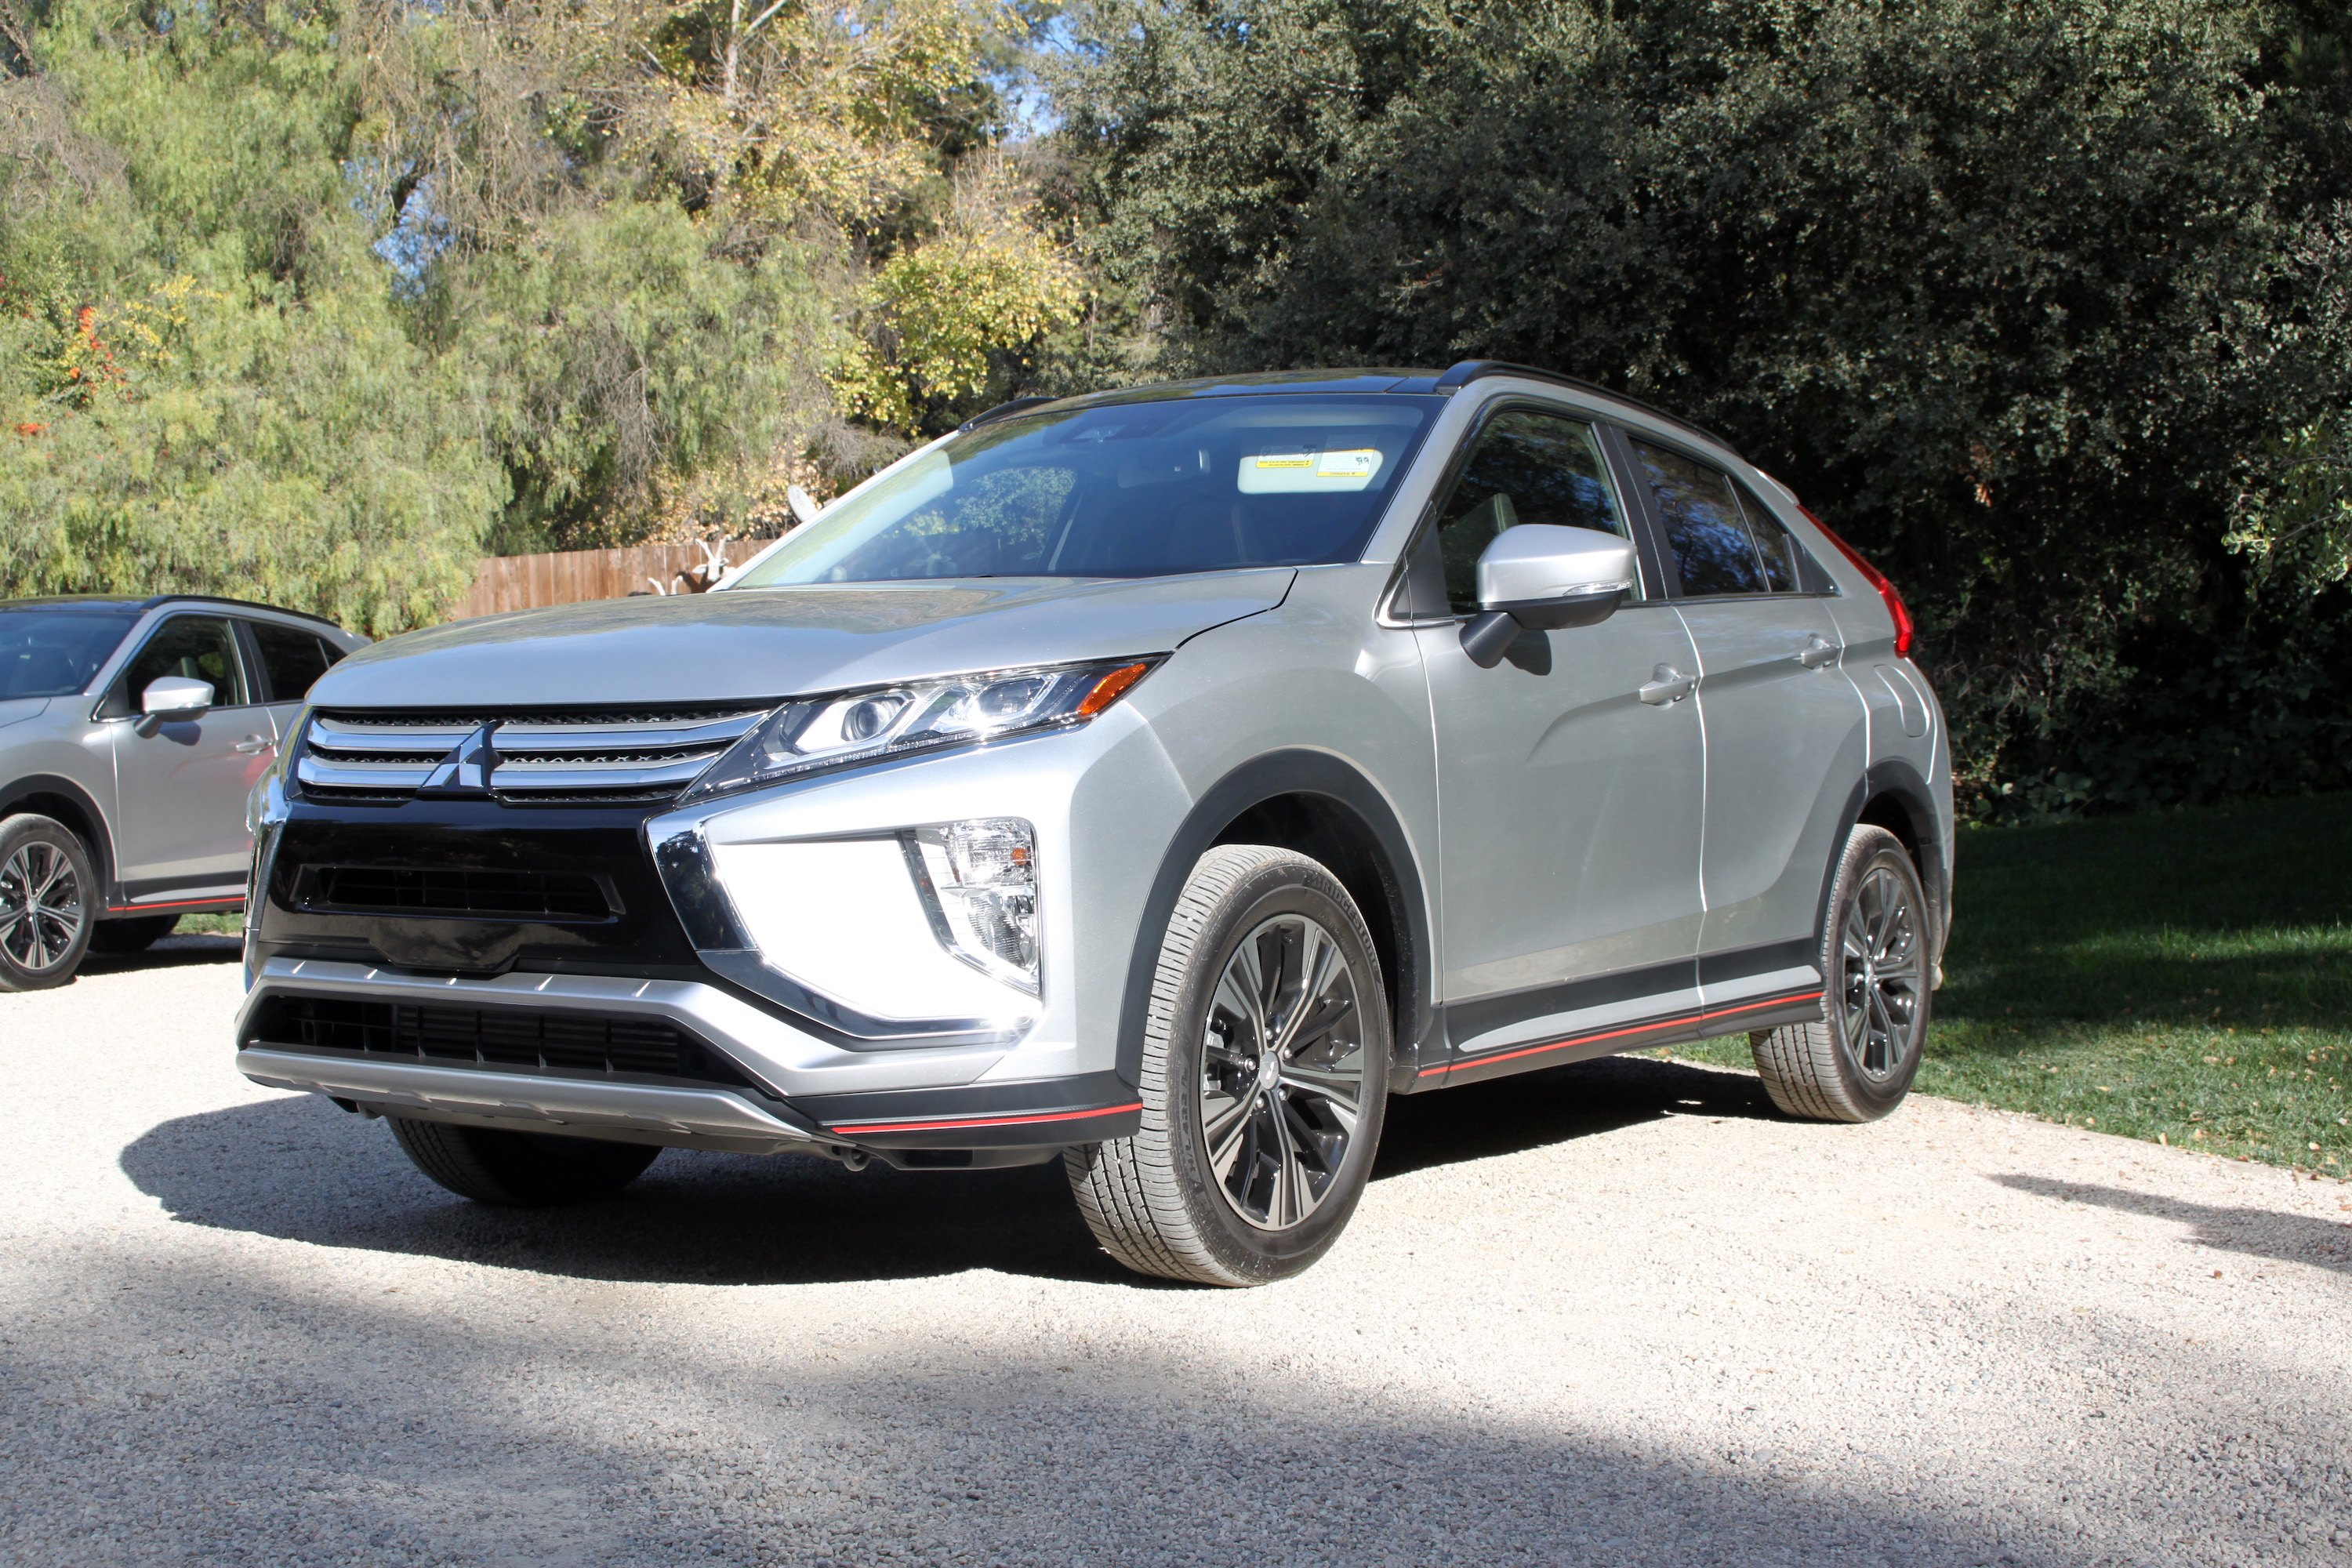 2018 Mitsubishi Eclipse Cross First Drive and Review ...